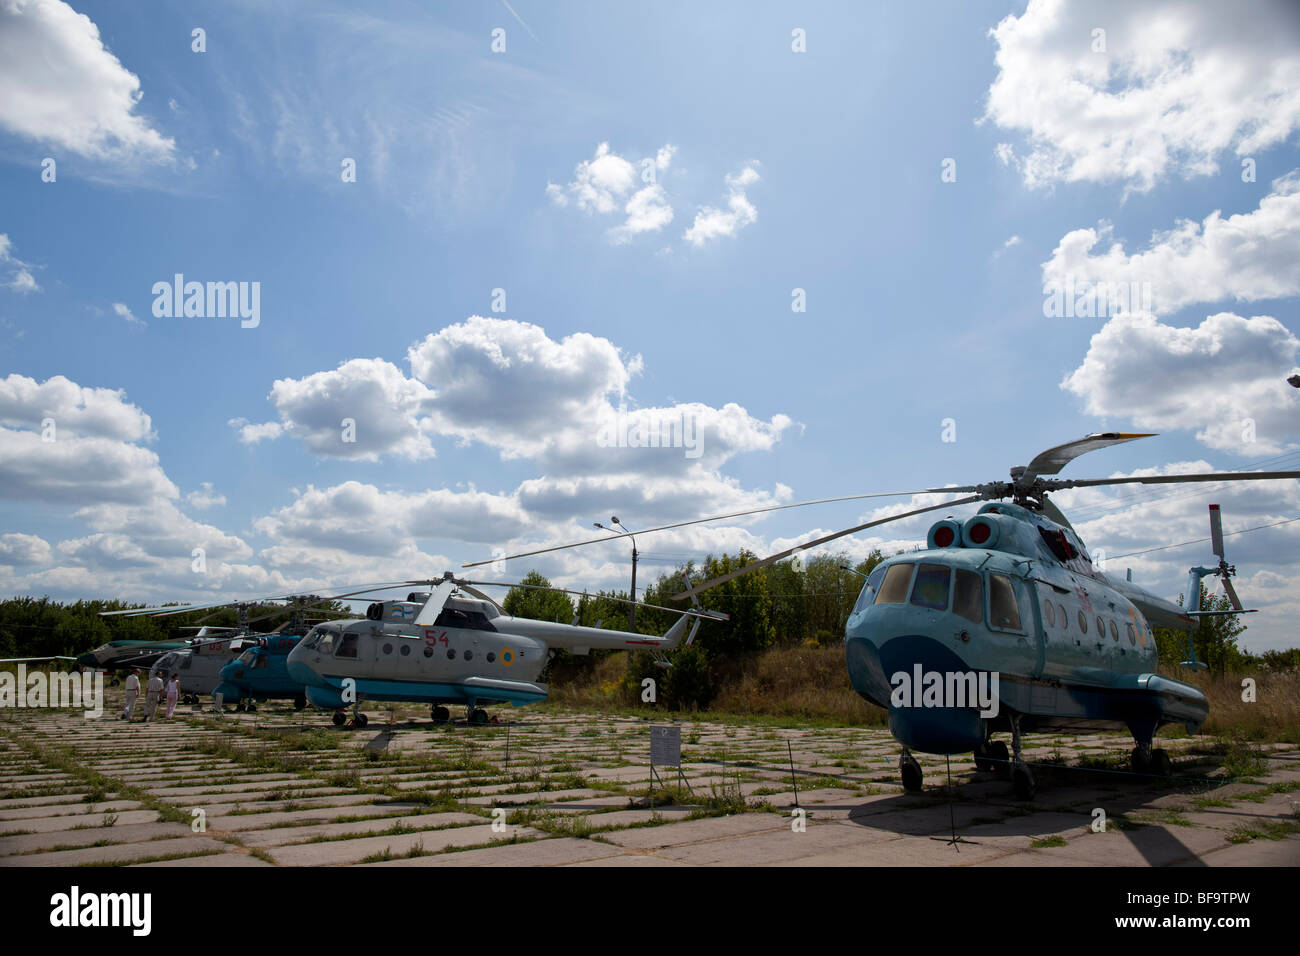 Historical helicopters stand in the Ukrainian aviation museum in Kiev-Zhulyany. - Stock Image